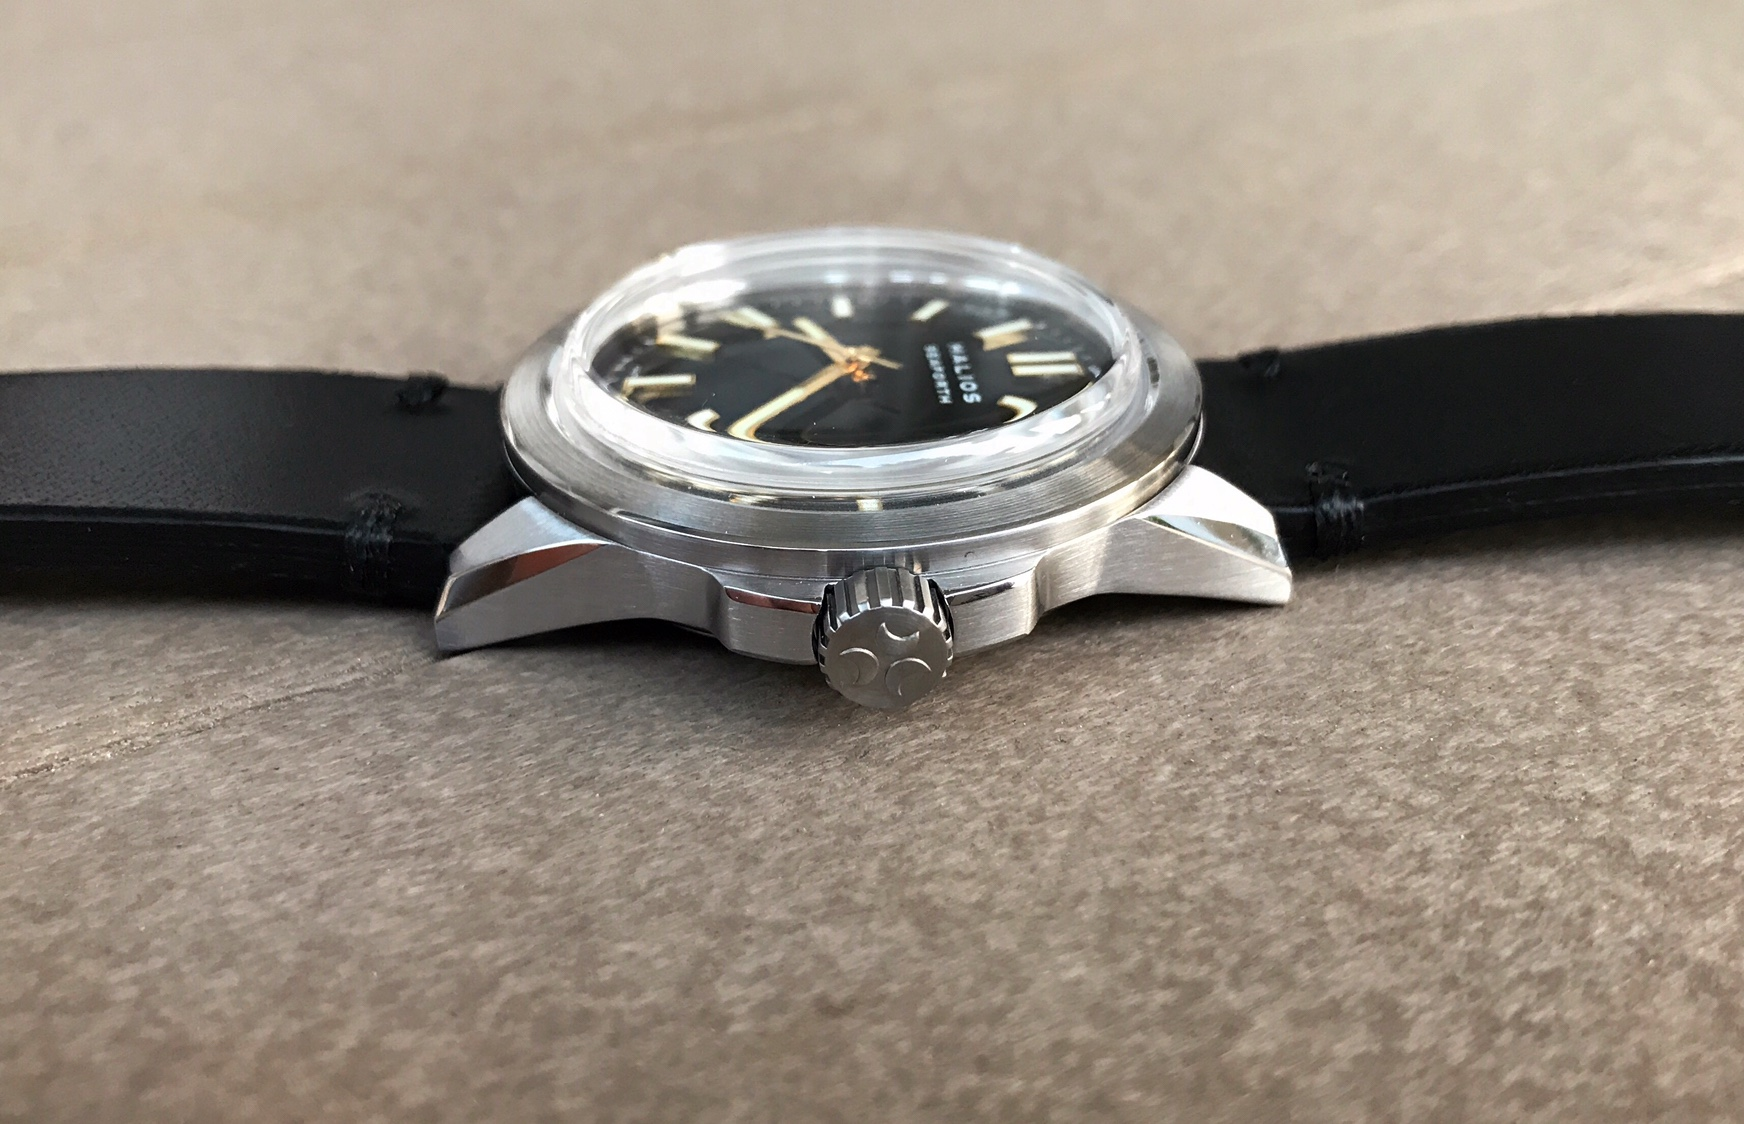 helios seaforth review